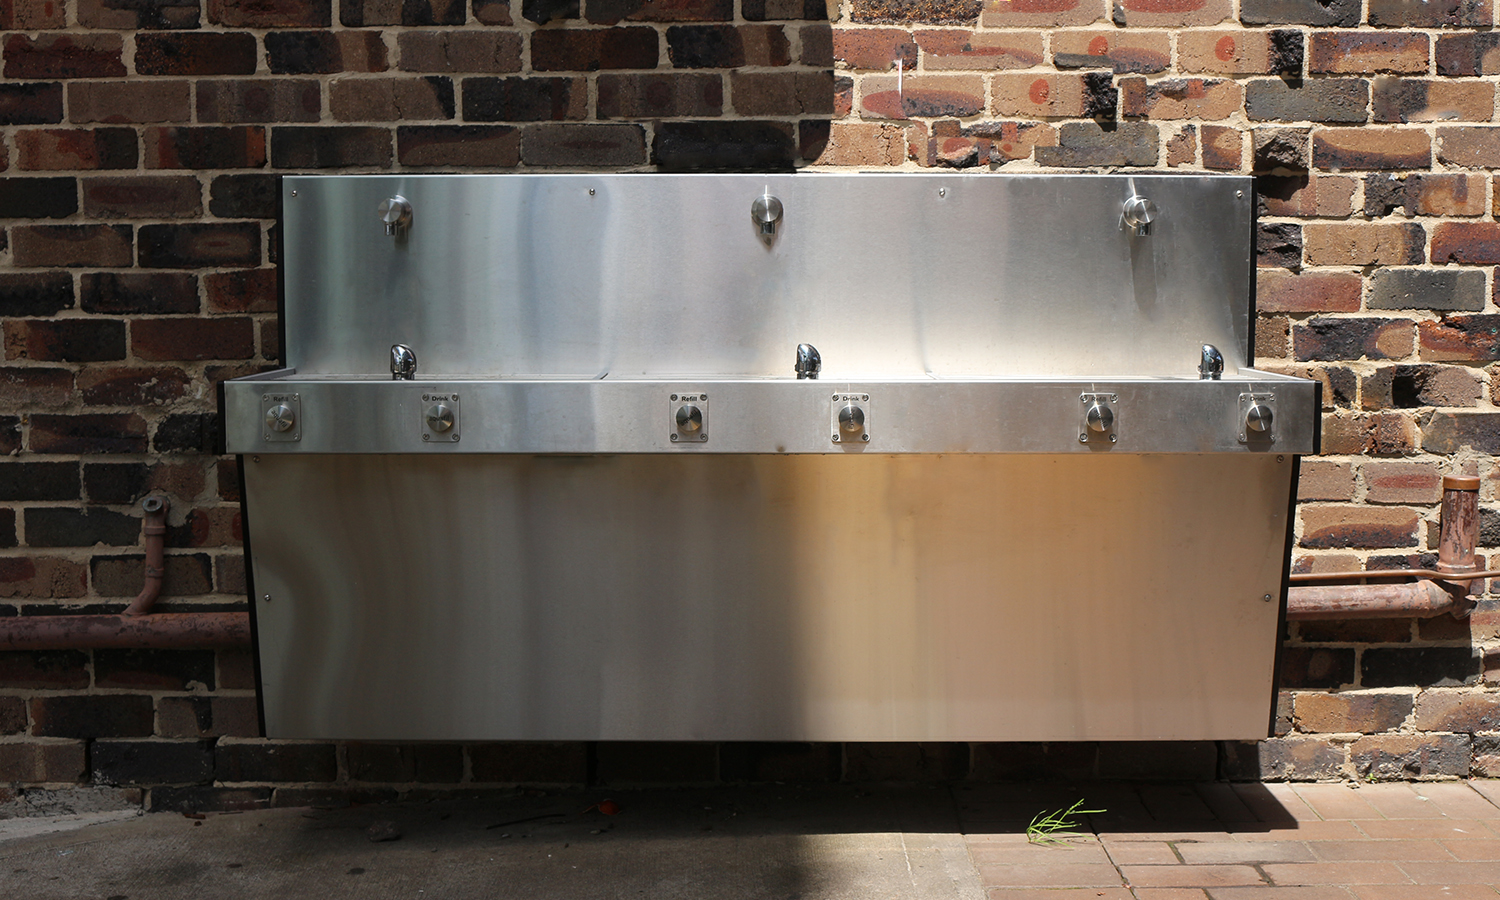 Frontal image of Aquafil Hydrobank Wall Mounted Drinking Fountain featured in Loreto Kirribilli School